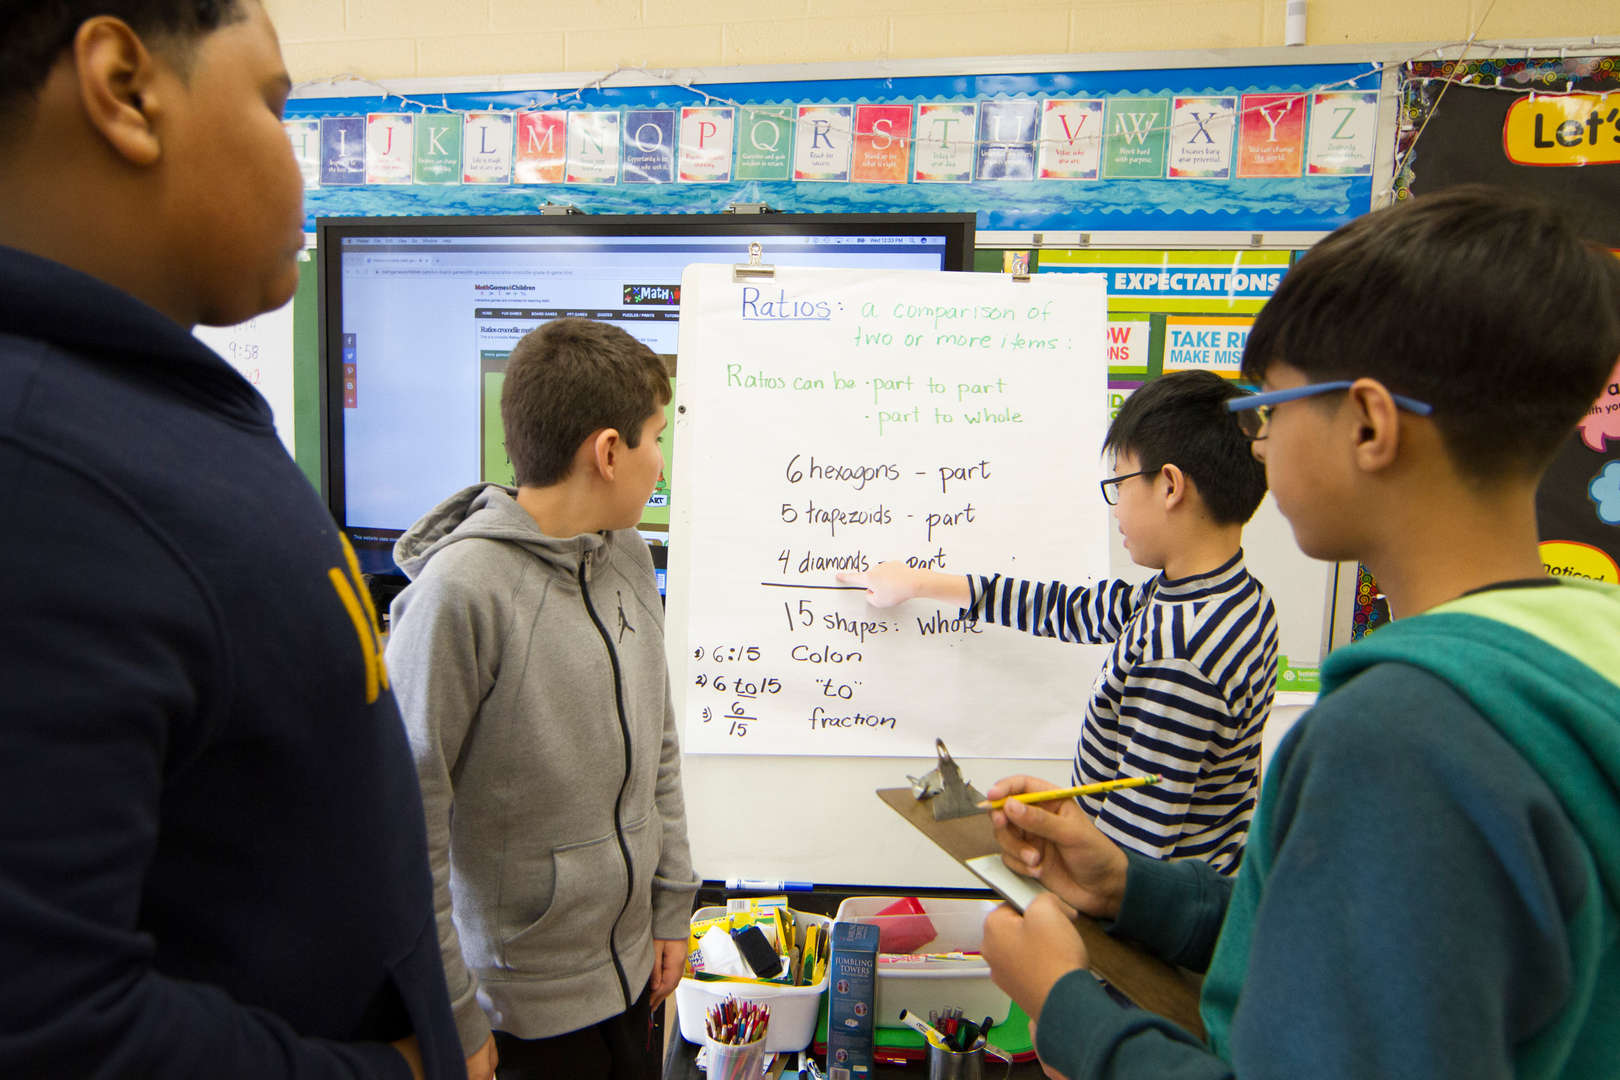 Students work together on a math project